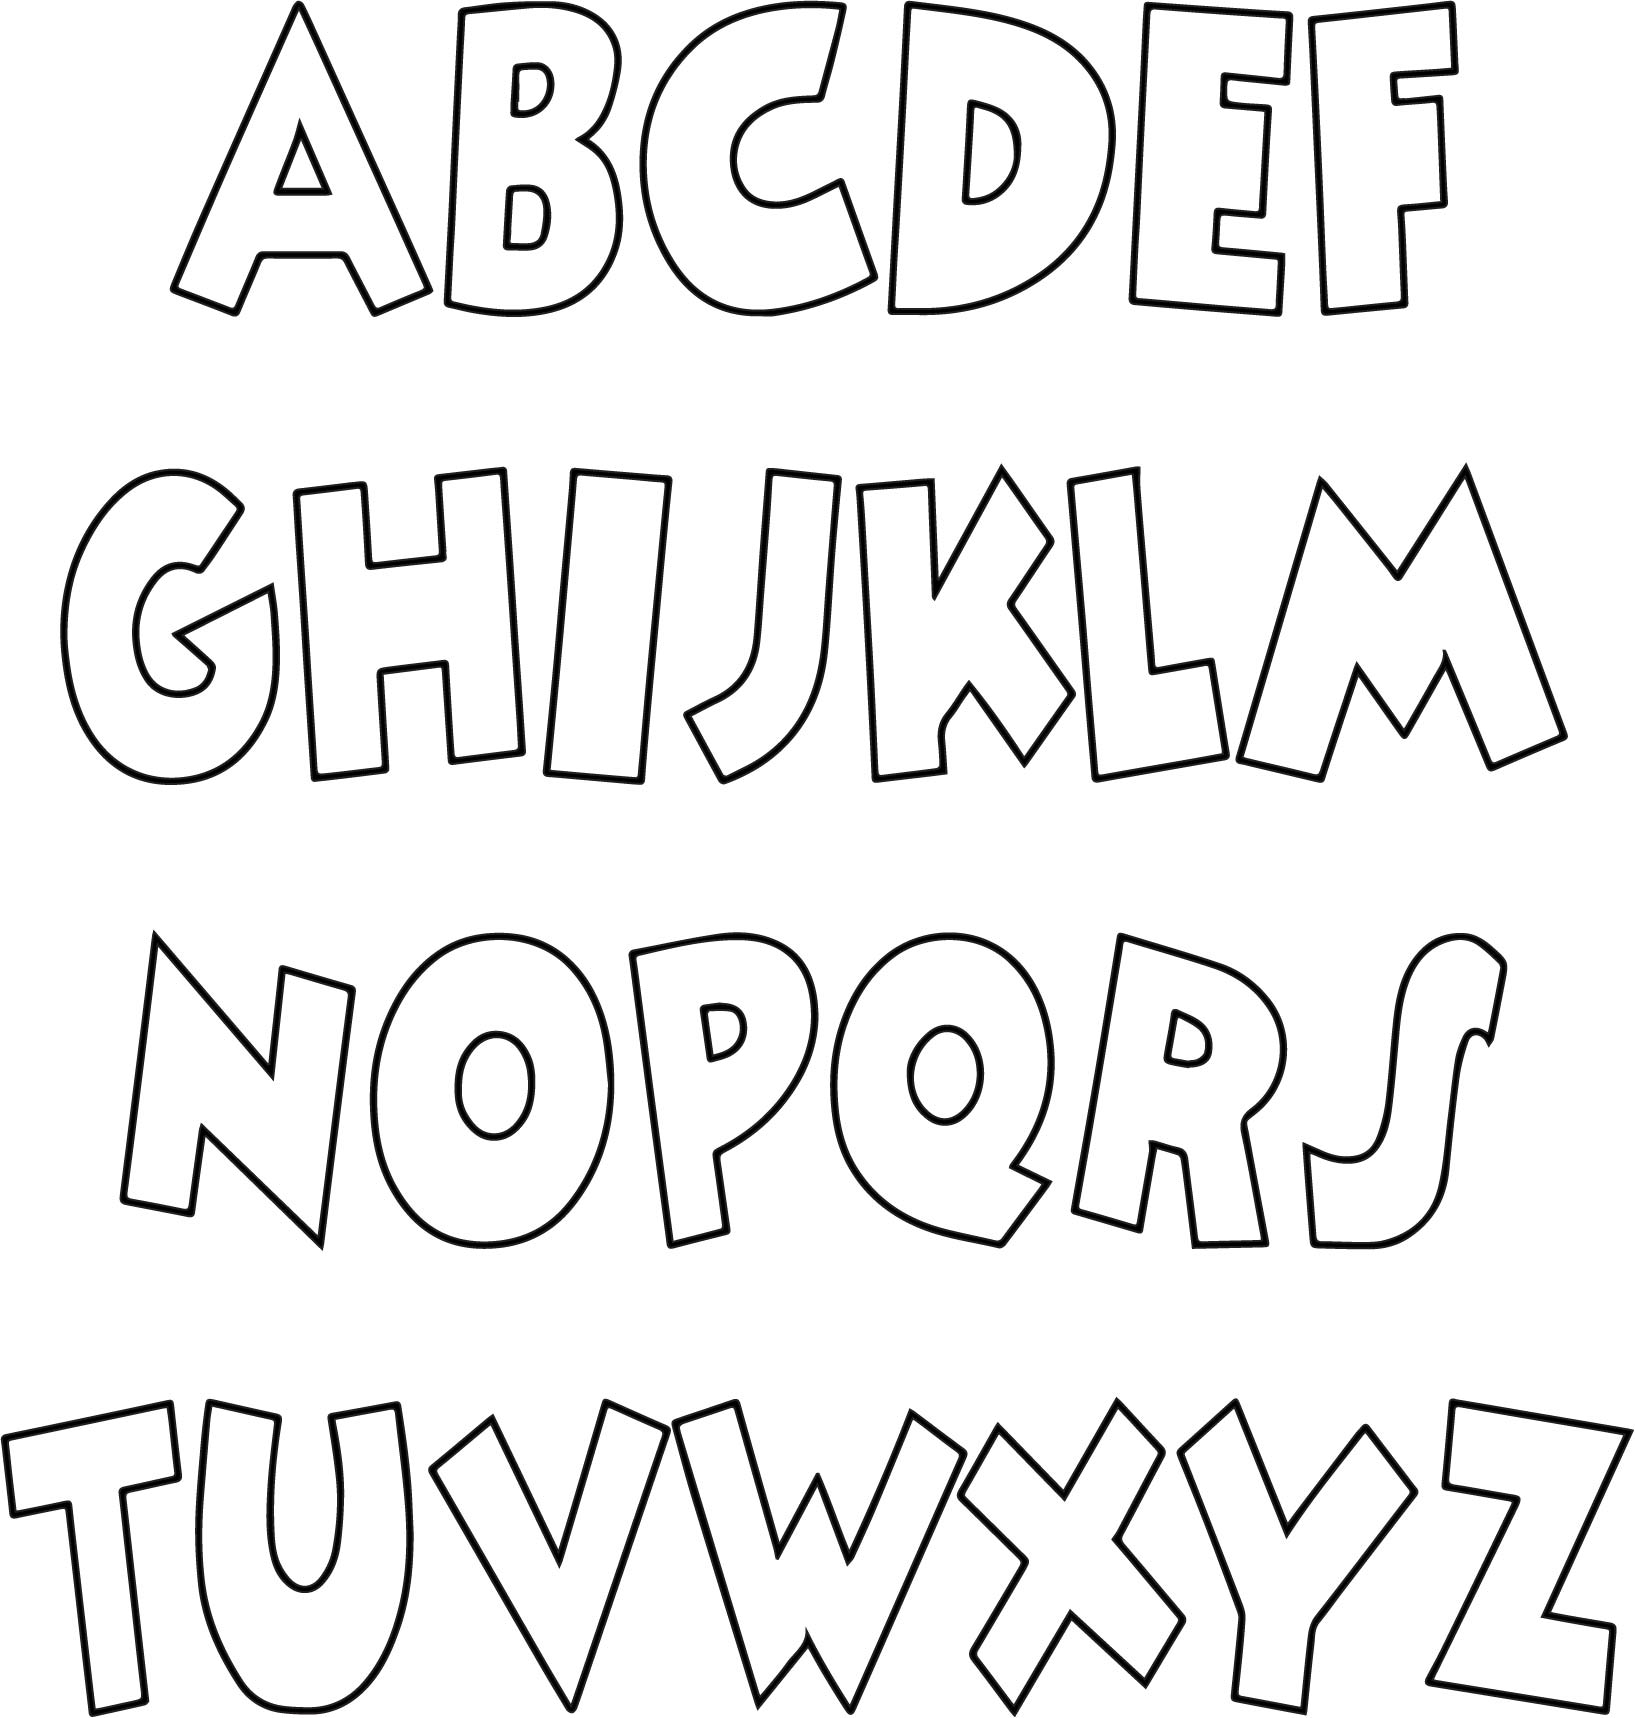 text coloring pages - photo#19